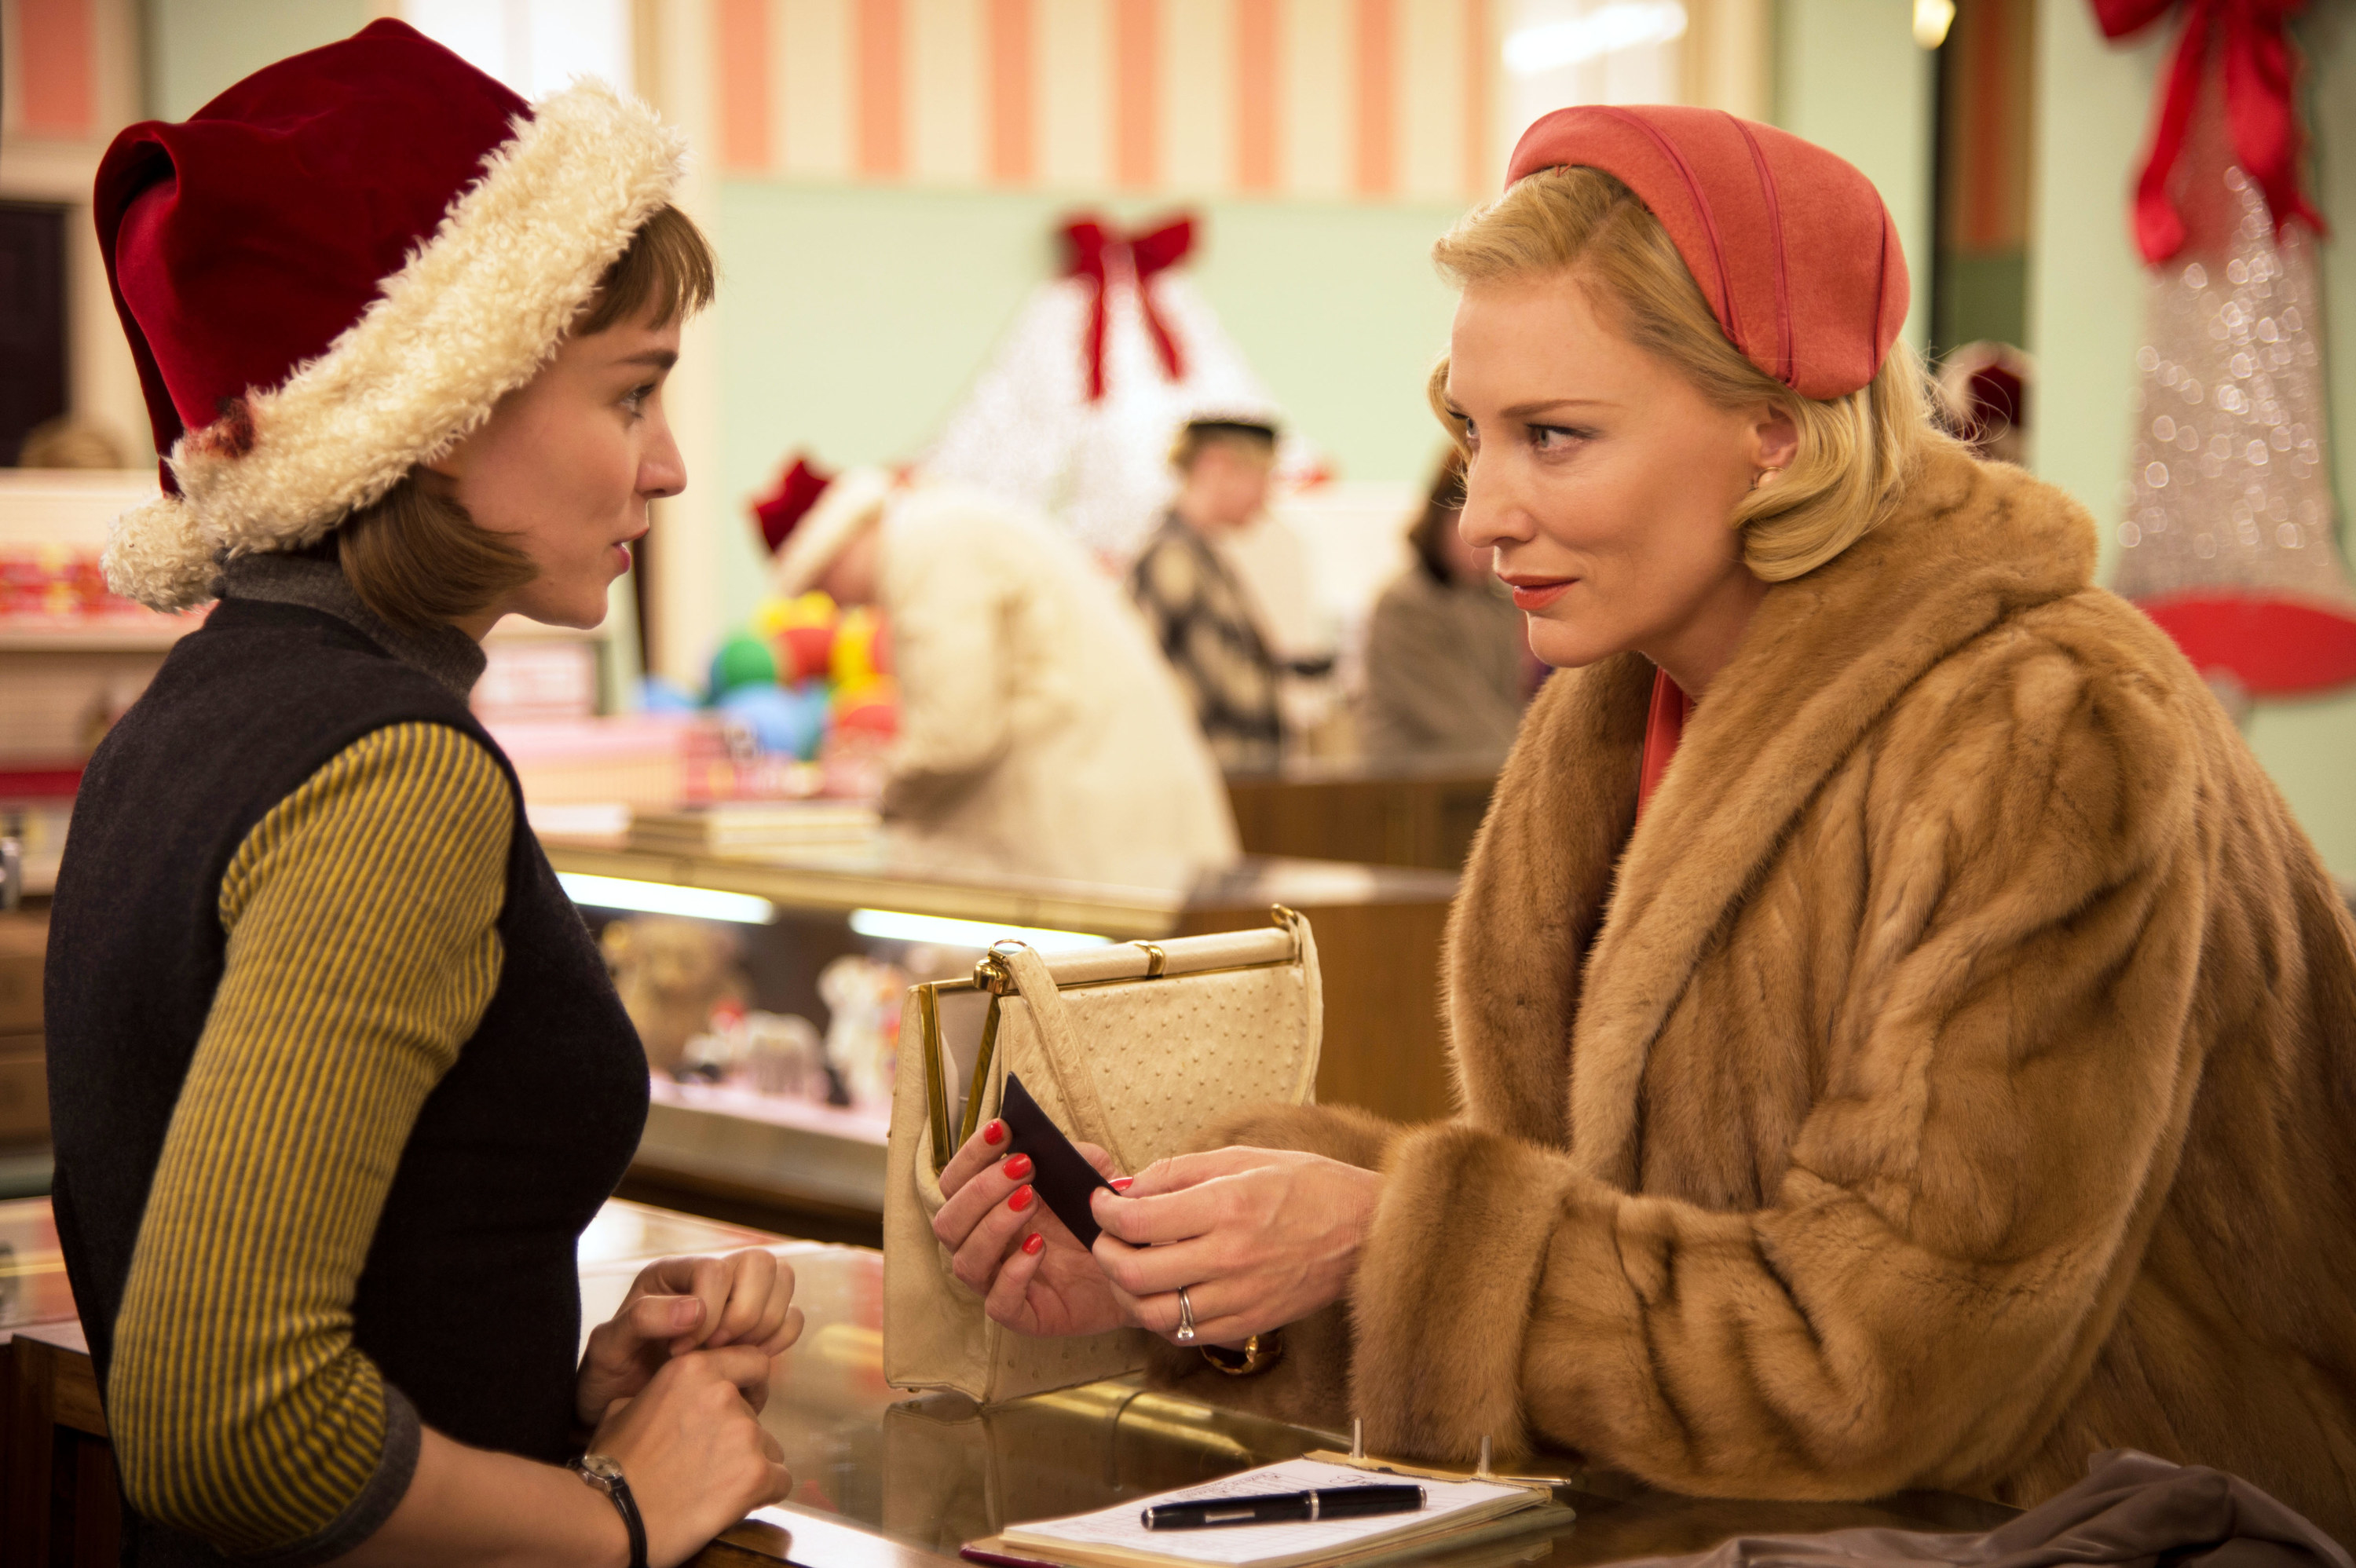 Cate Blanchett and Rooney Mara's characters talking